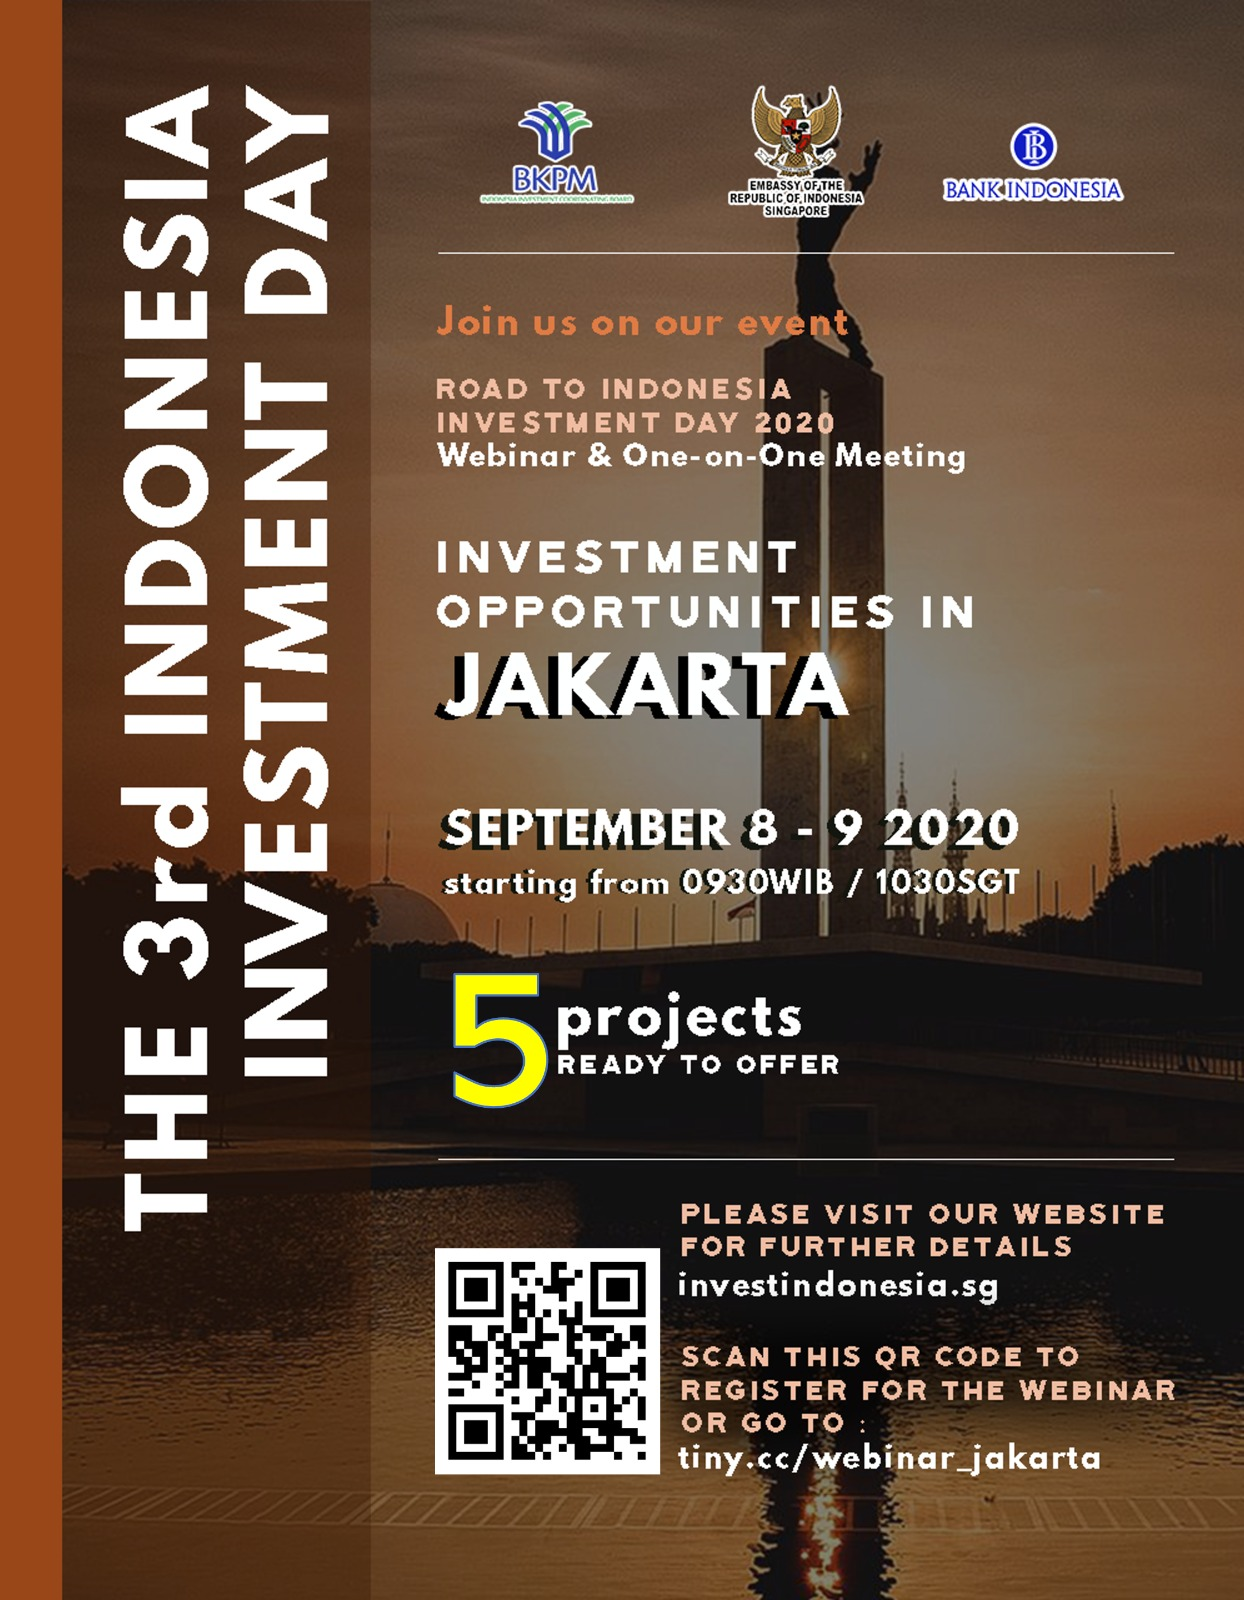 THE 3rd INDONESIA INVESTMENT DAY